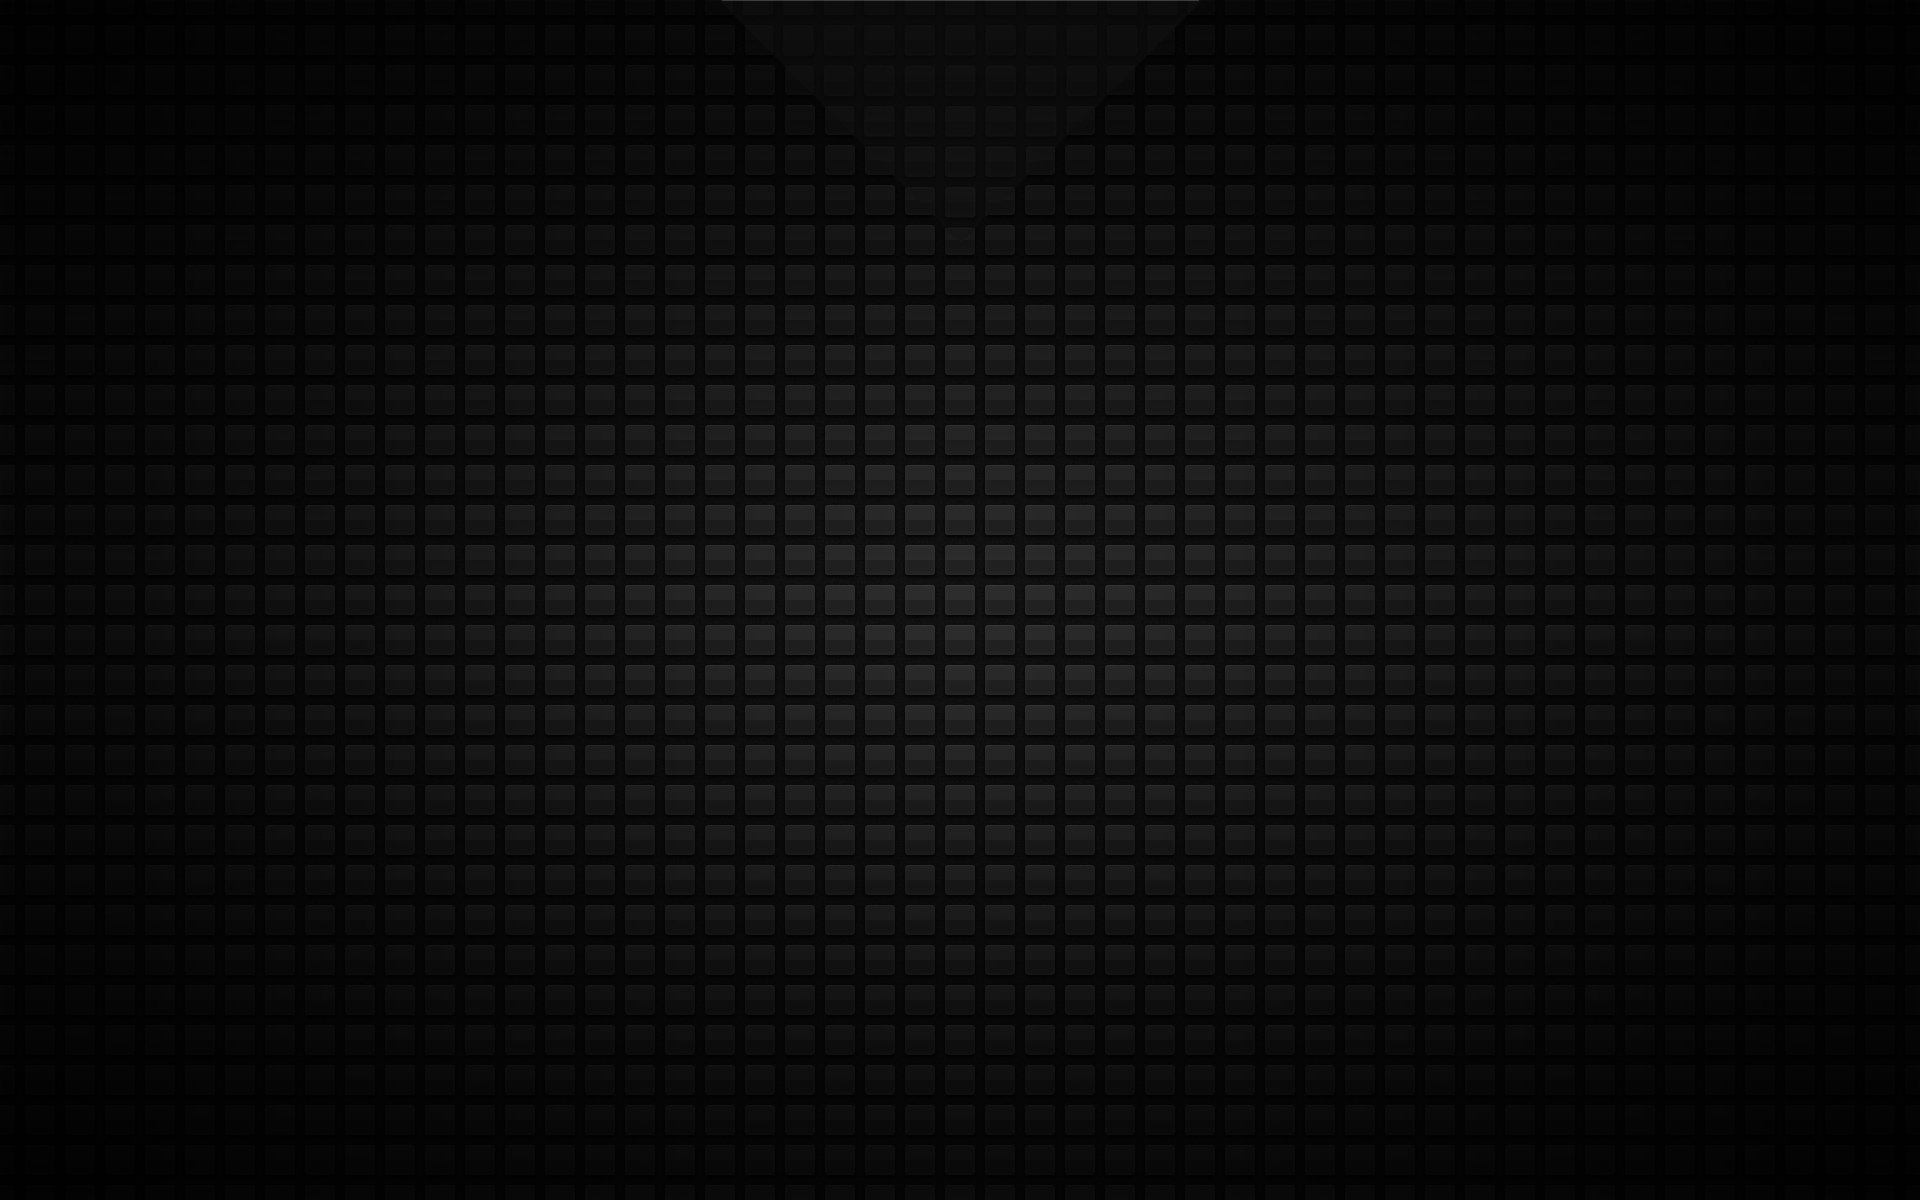 Black Background Hd Wallpaper 24: Black Full HD Wallpaper And Background Image